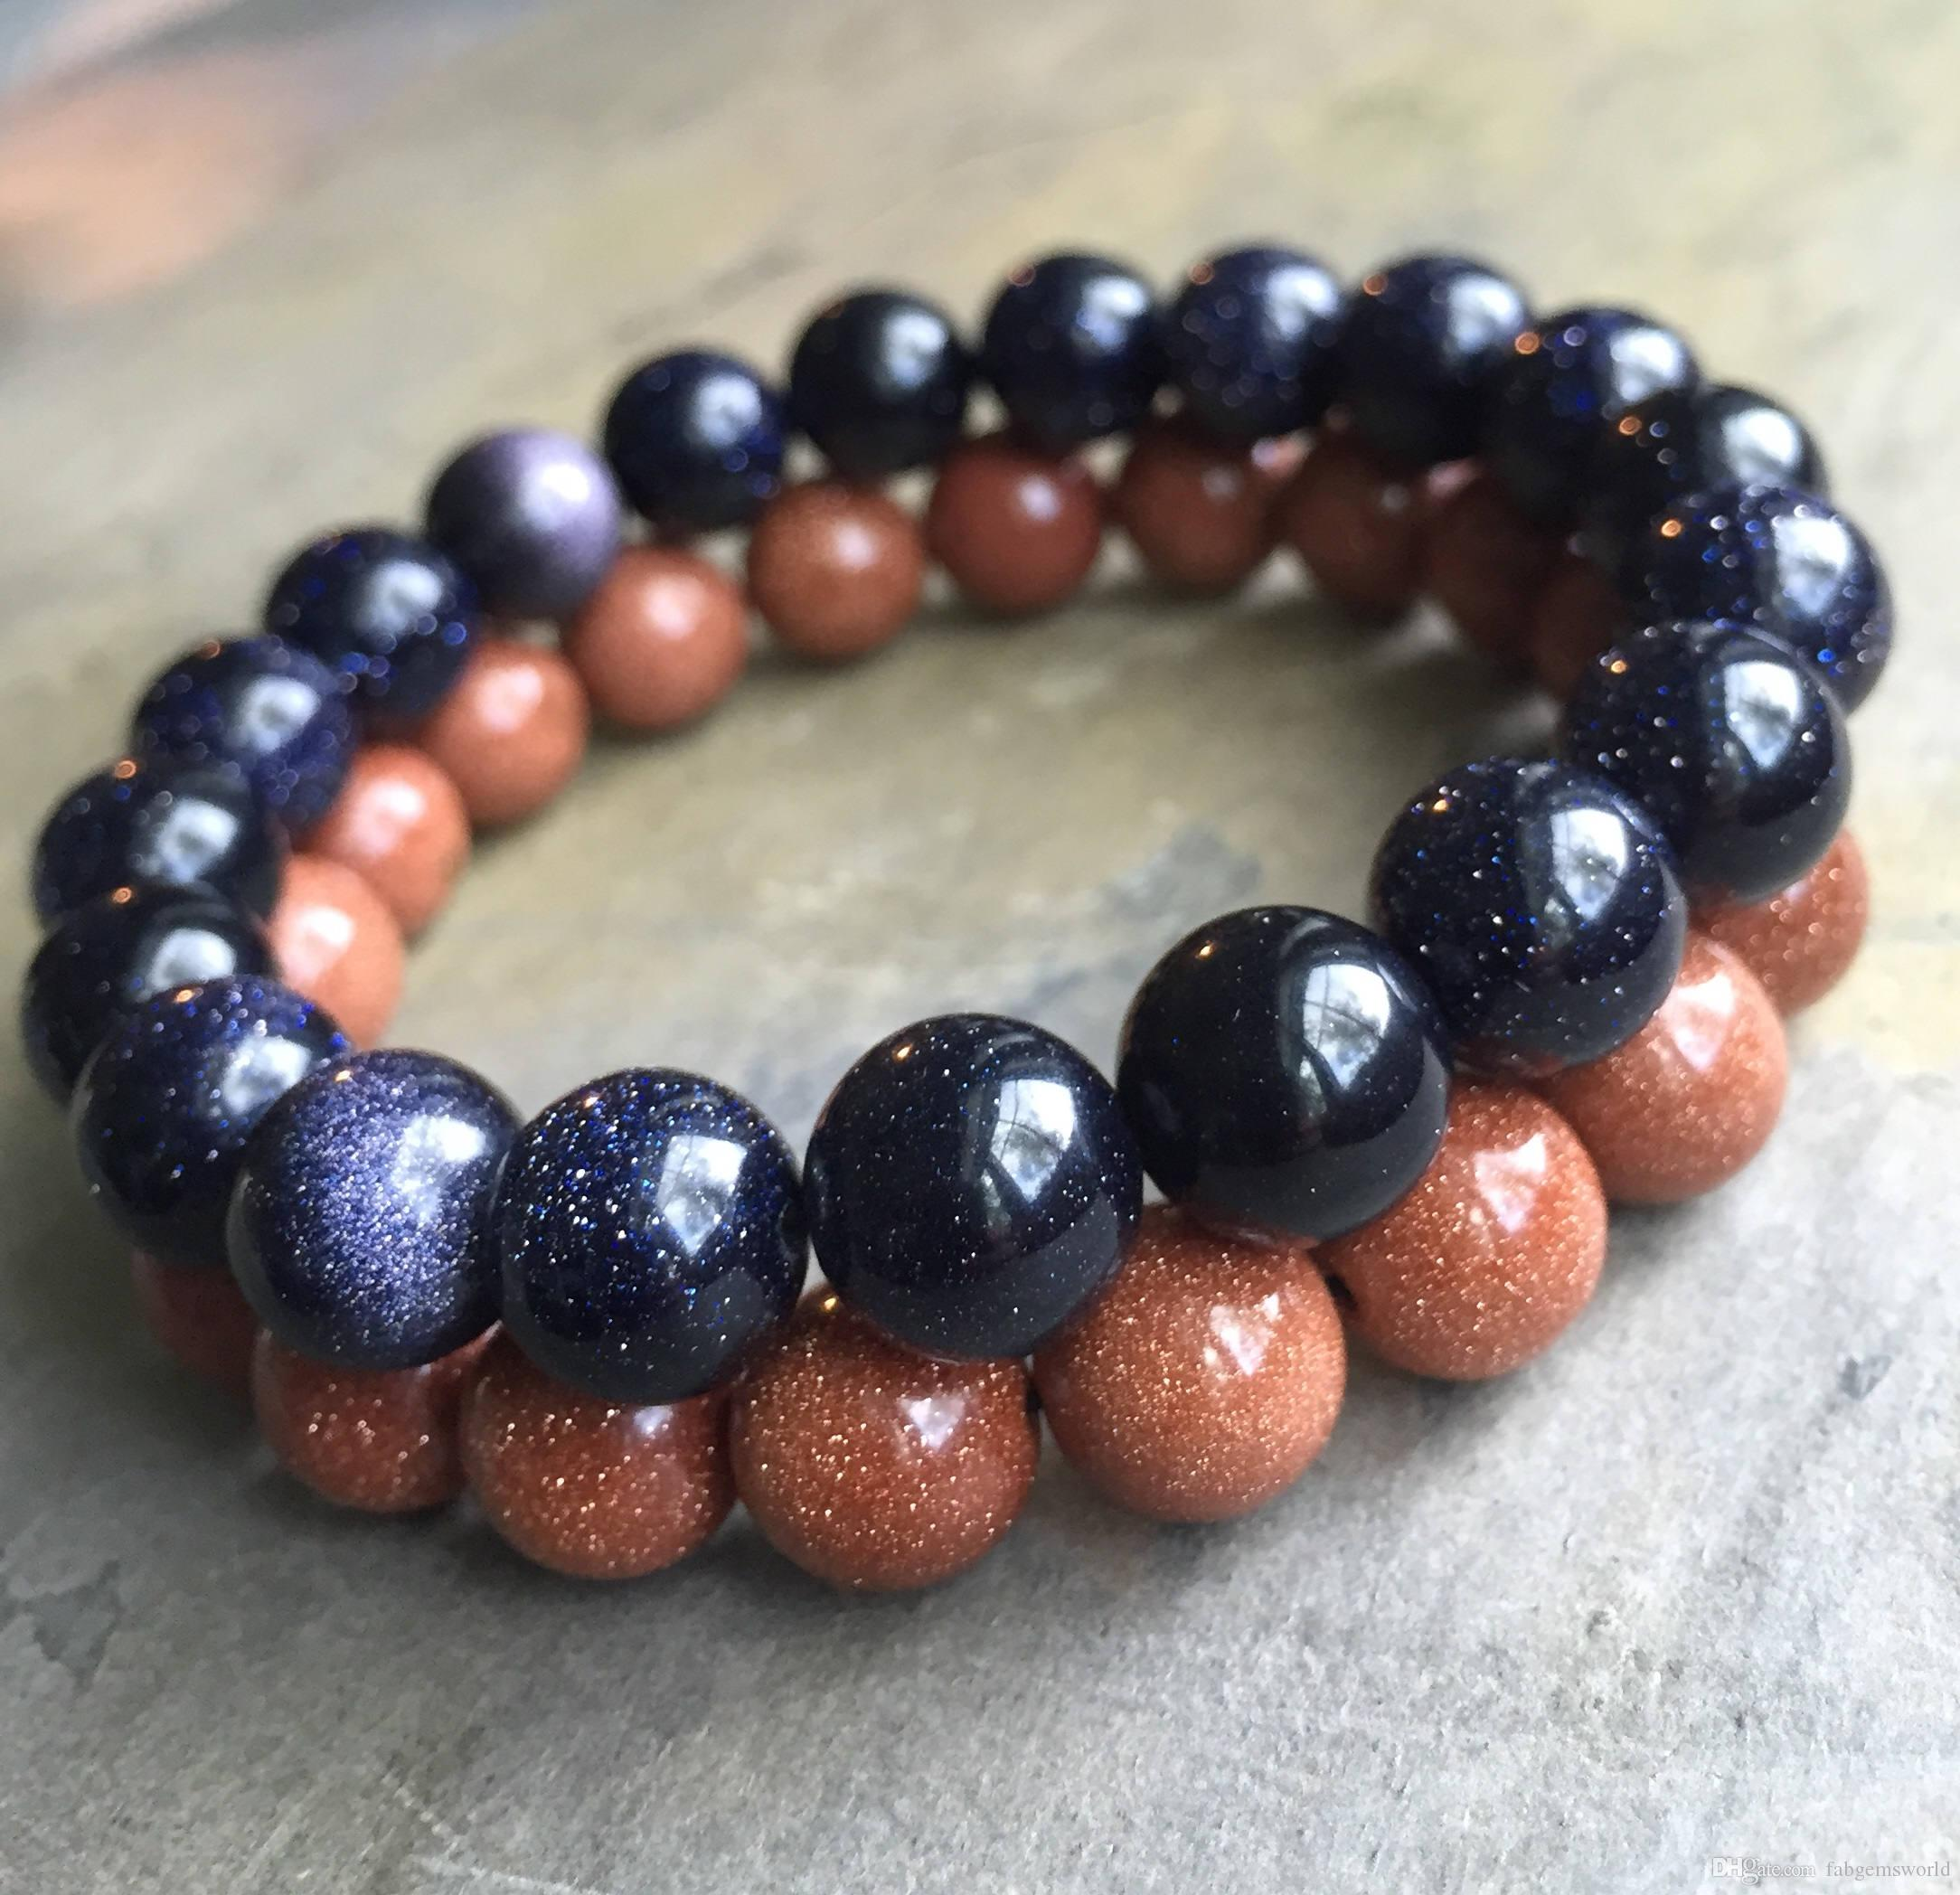 and fullxfull aromatherapy february birthstone with p bracelet beaded for healing amethyst gemstone stone wear oils bead jewelry her il essential to gift lava